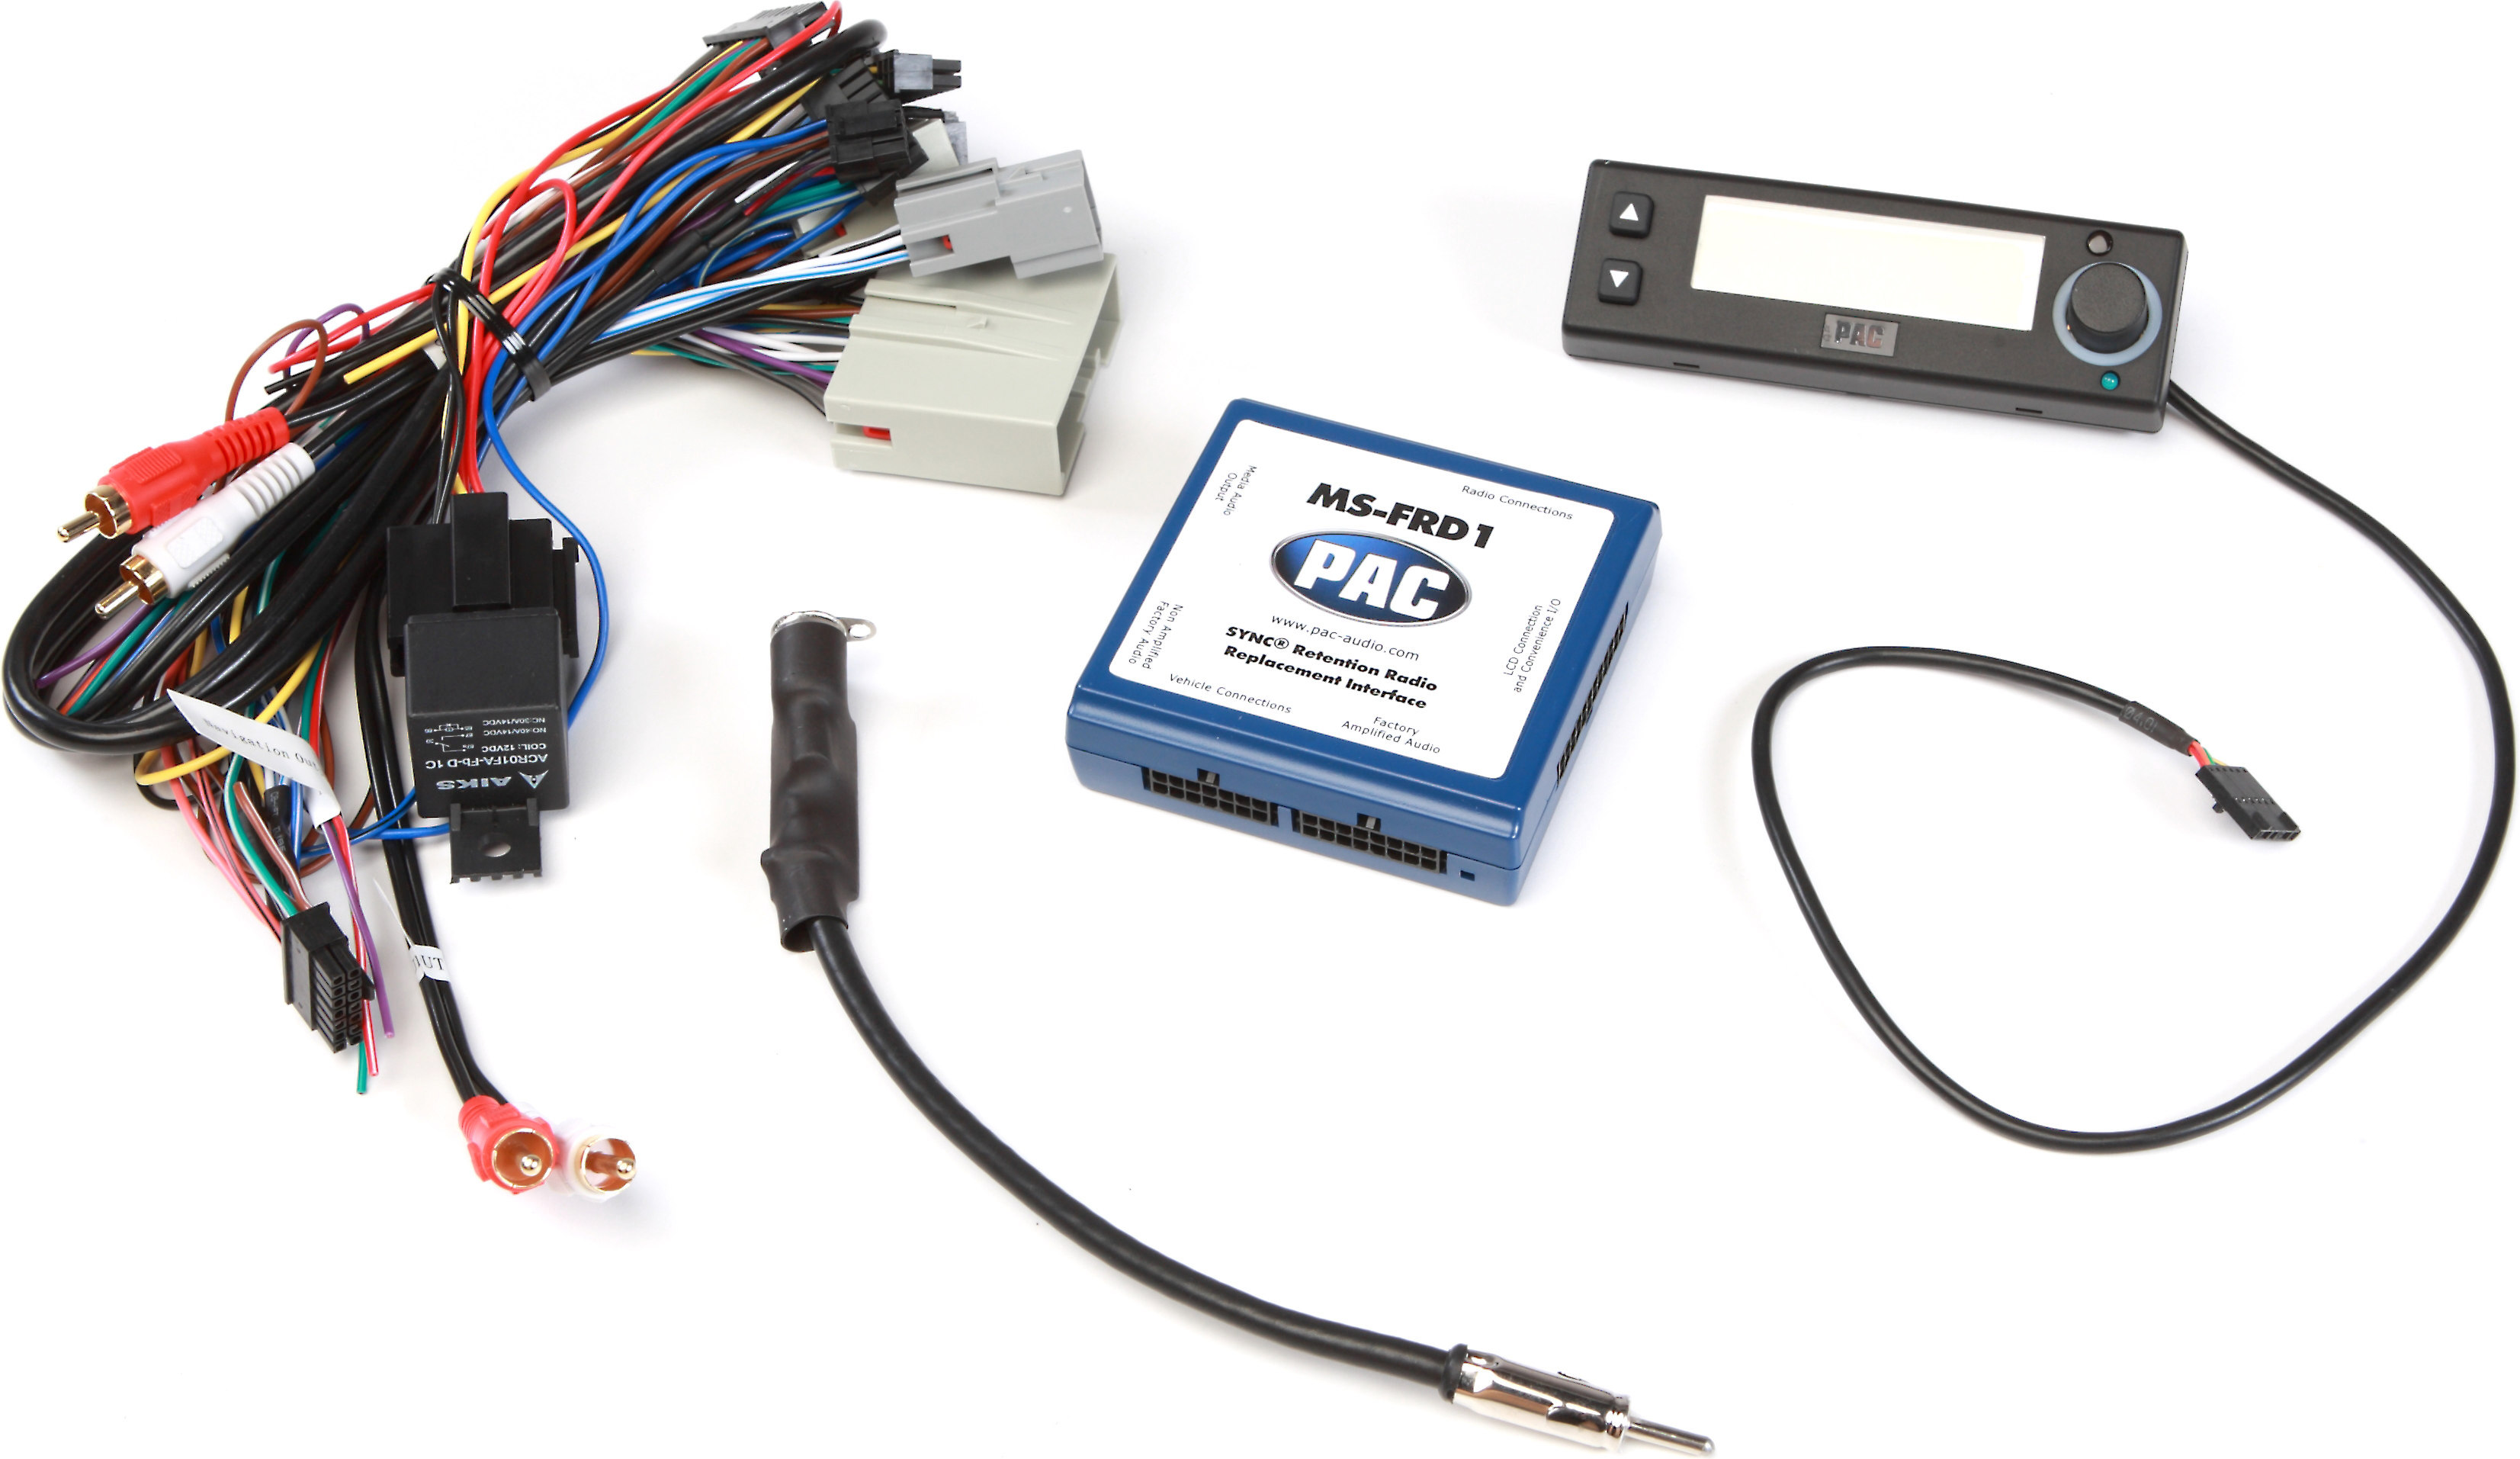 Wondrous Pac Ms Frd1 Wiring Interface Connect A New Car Stereo And Retain The Wiring Cloud Pendufoxcilixyz